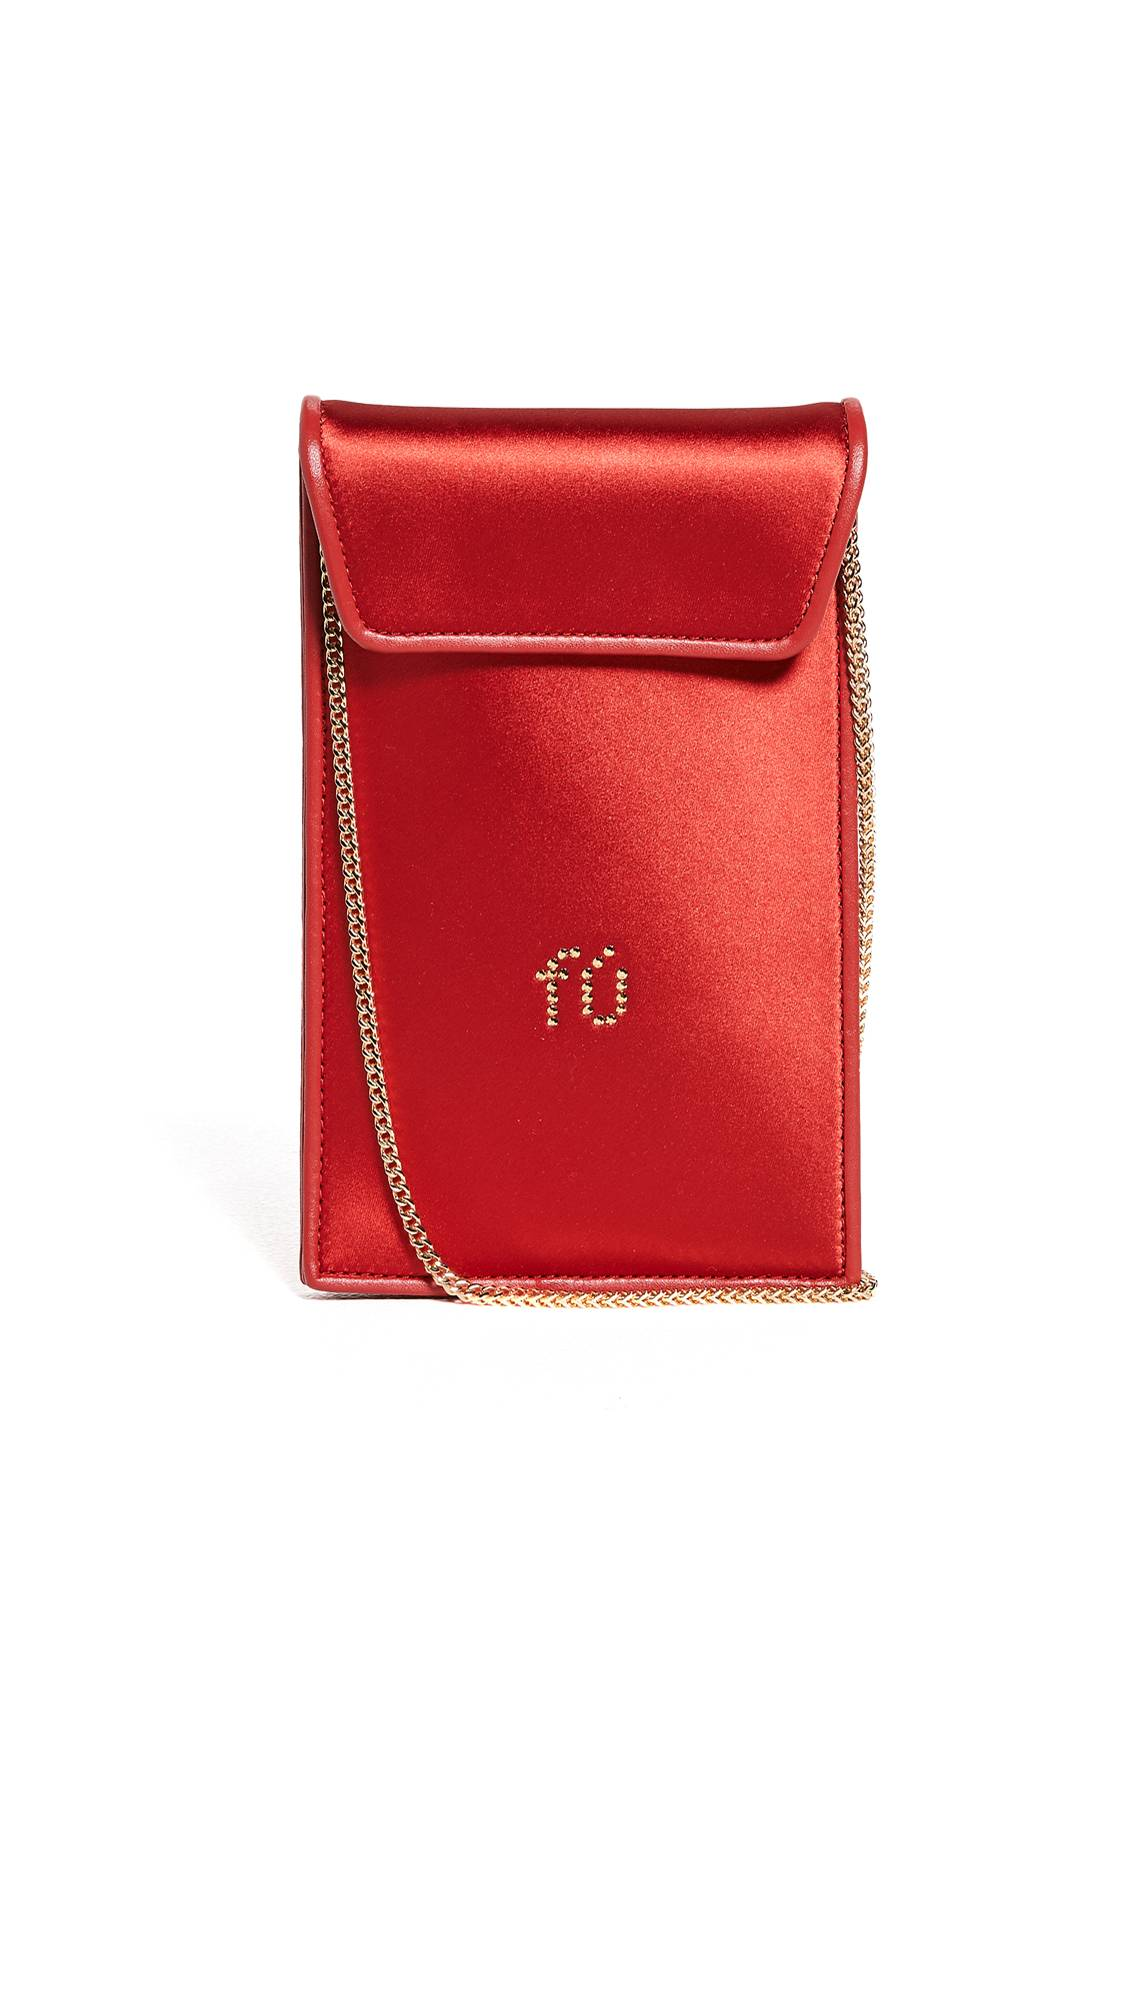 Alexander Wang Wangloc Envelope Phone Pouch  - Red Multi - Size: One Size